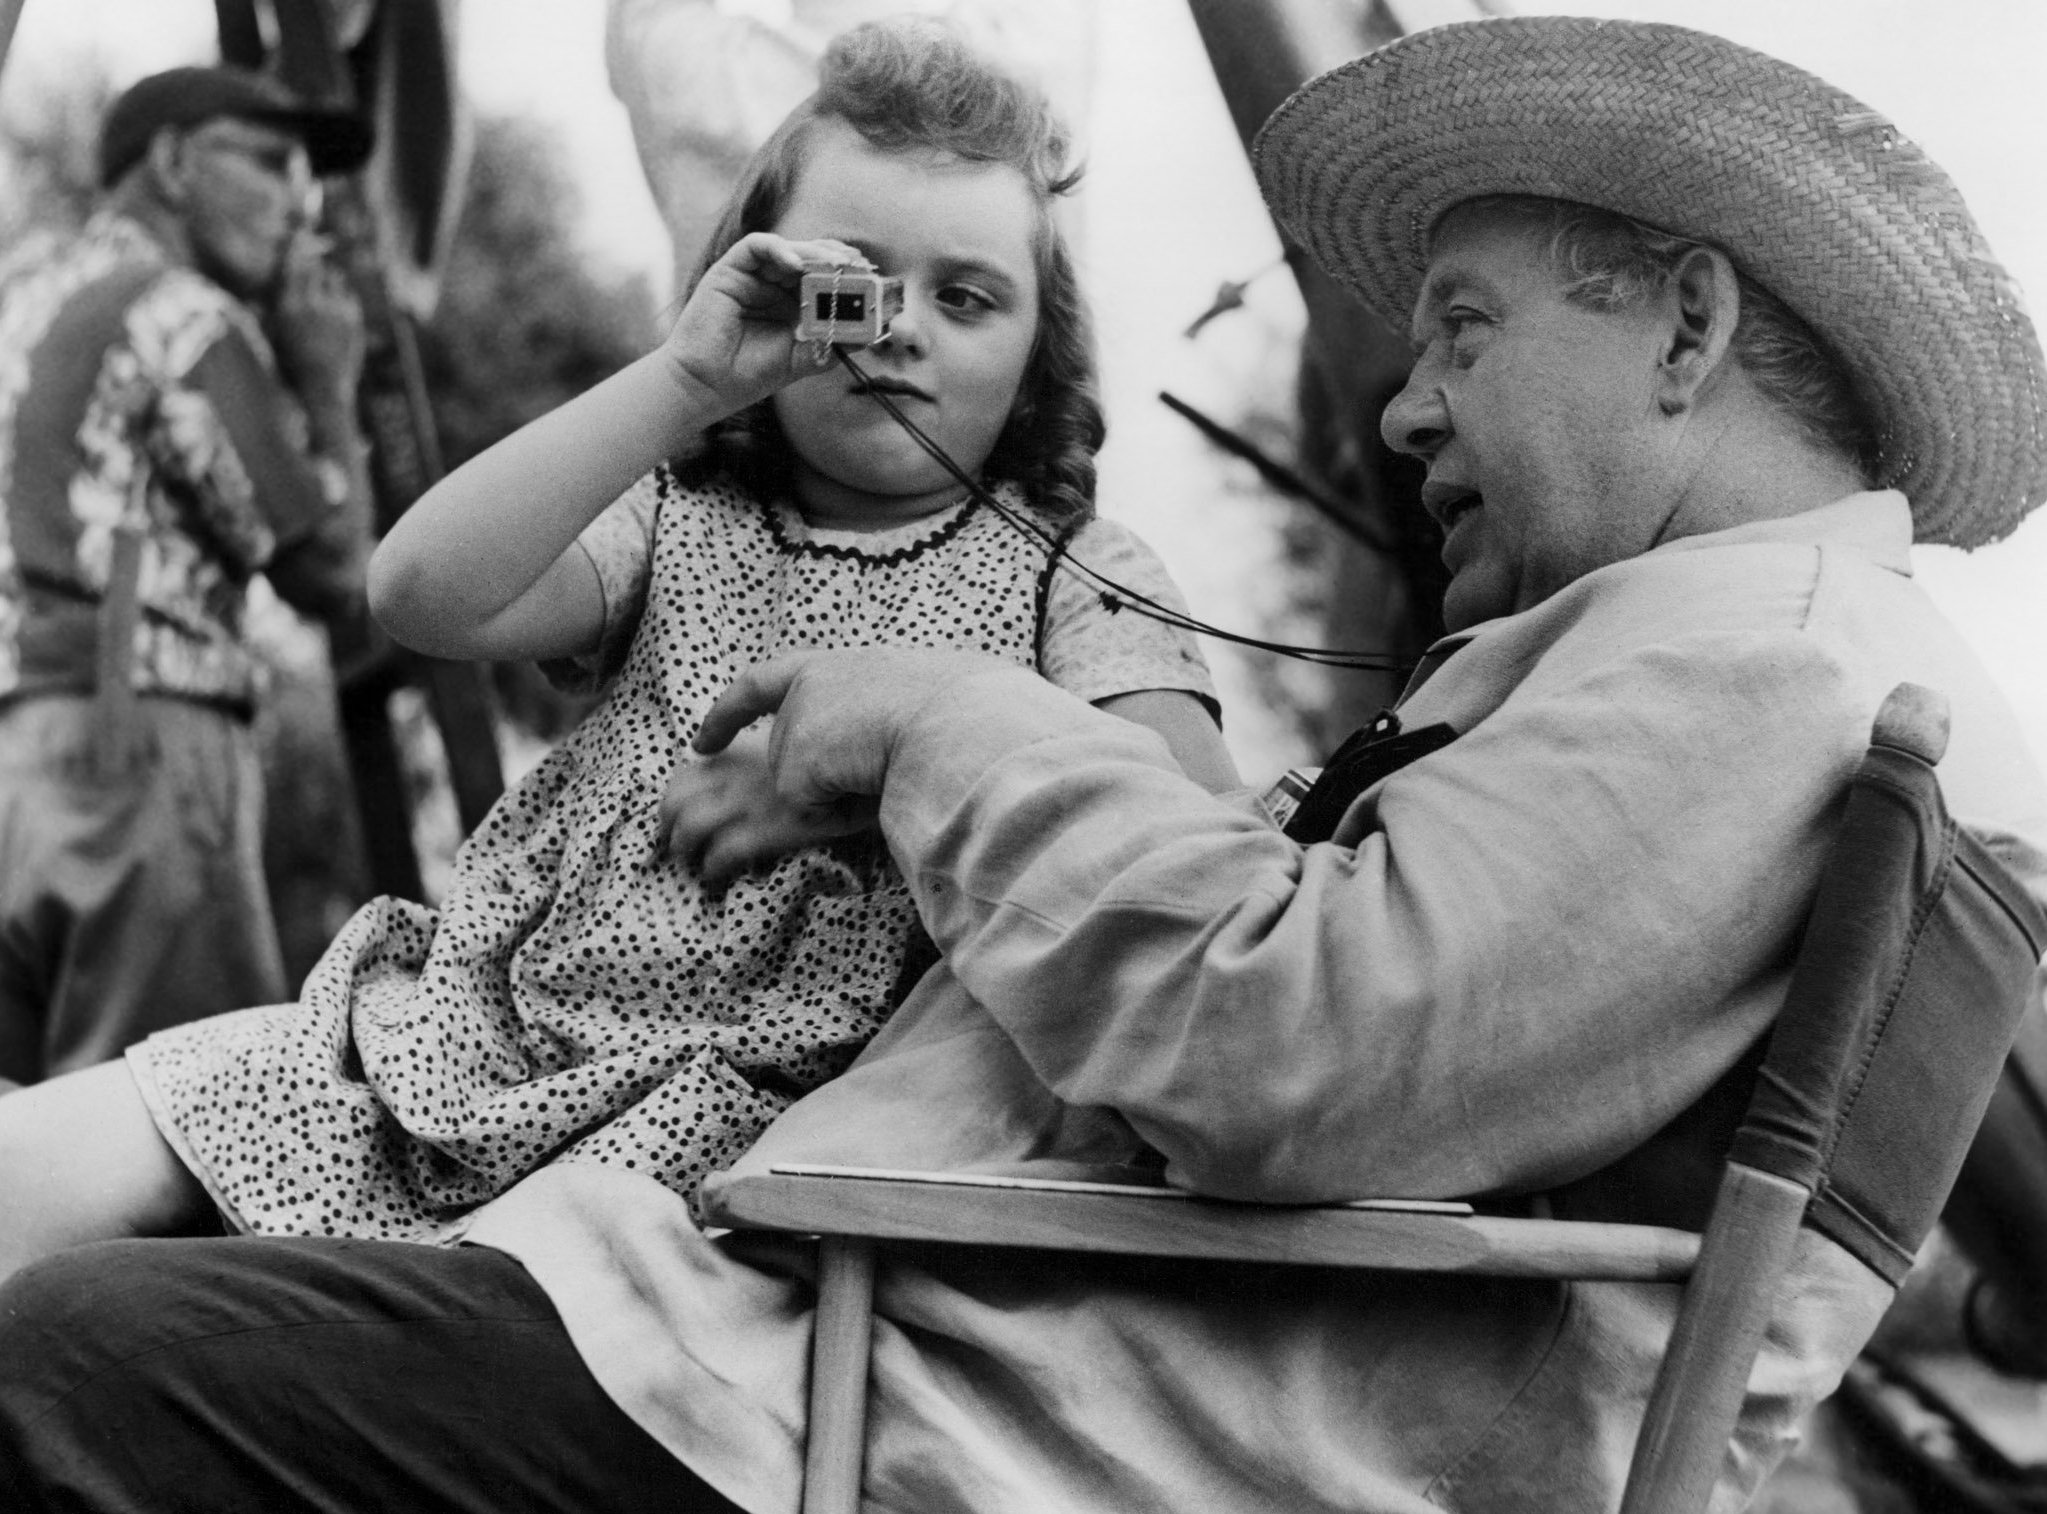 SALLY JANE BRUCE AND CHARLES LAUGHTON ON THE SET OF 'THE NIGHT OF THE HUNTER' - 1955 VARIOUS